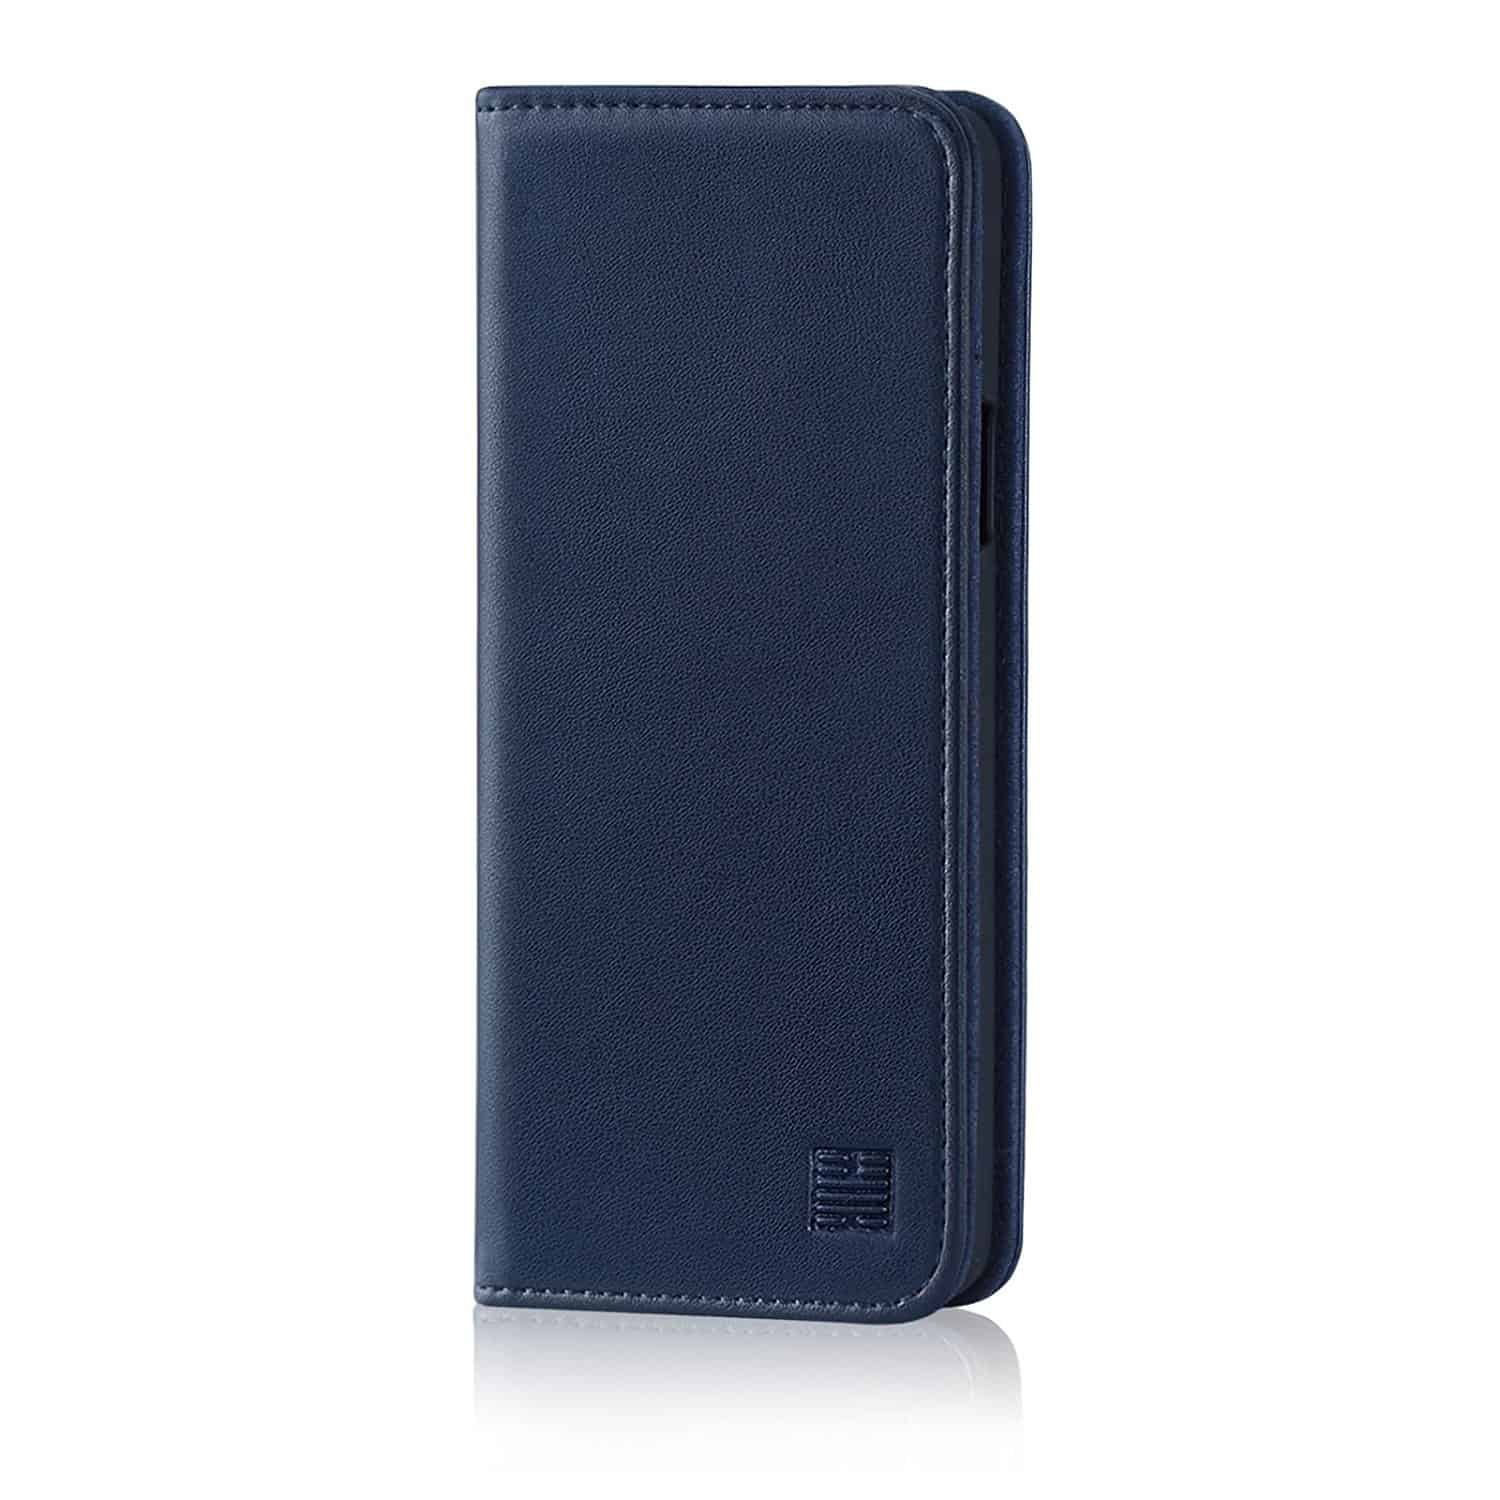 32nd Classic Series - Real Leather Book Wallet Case